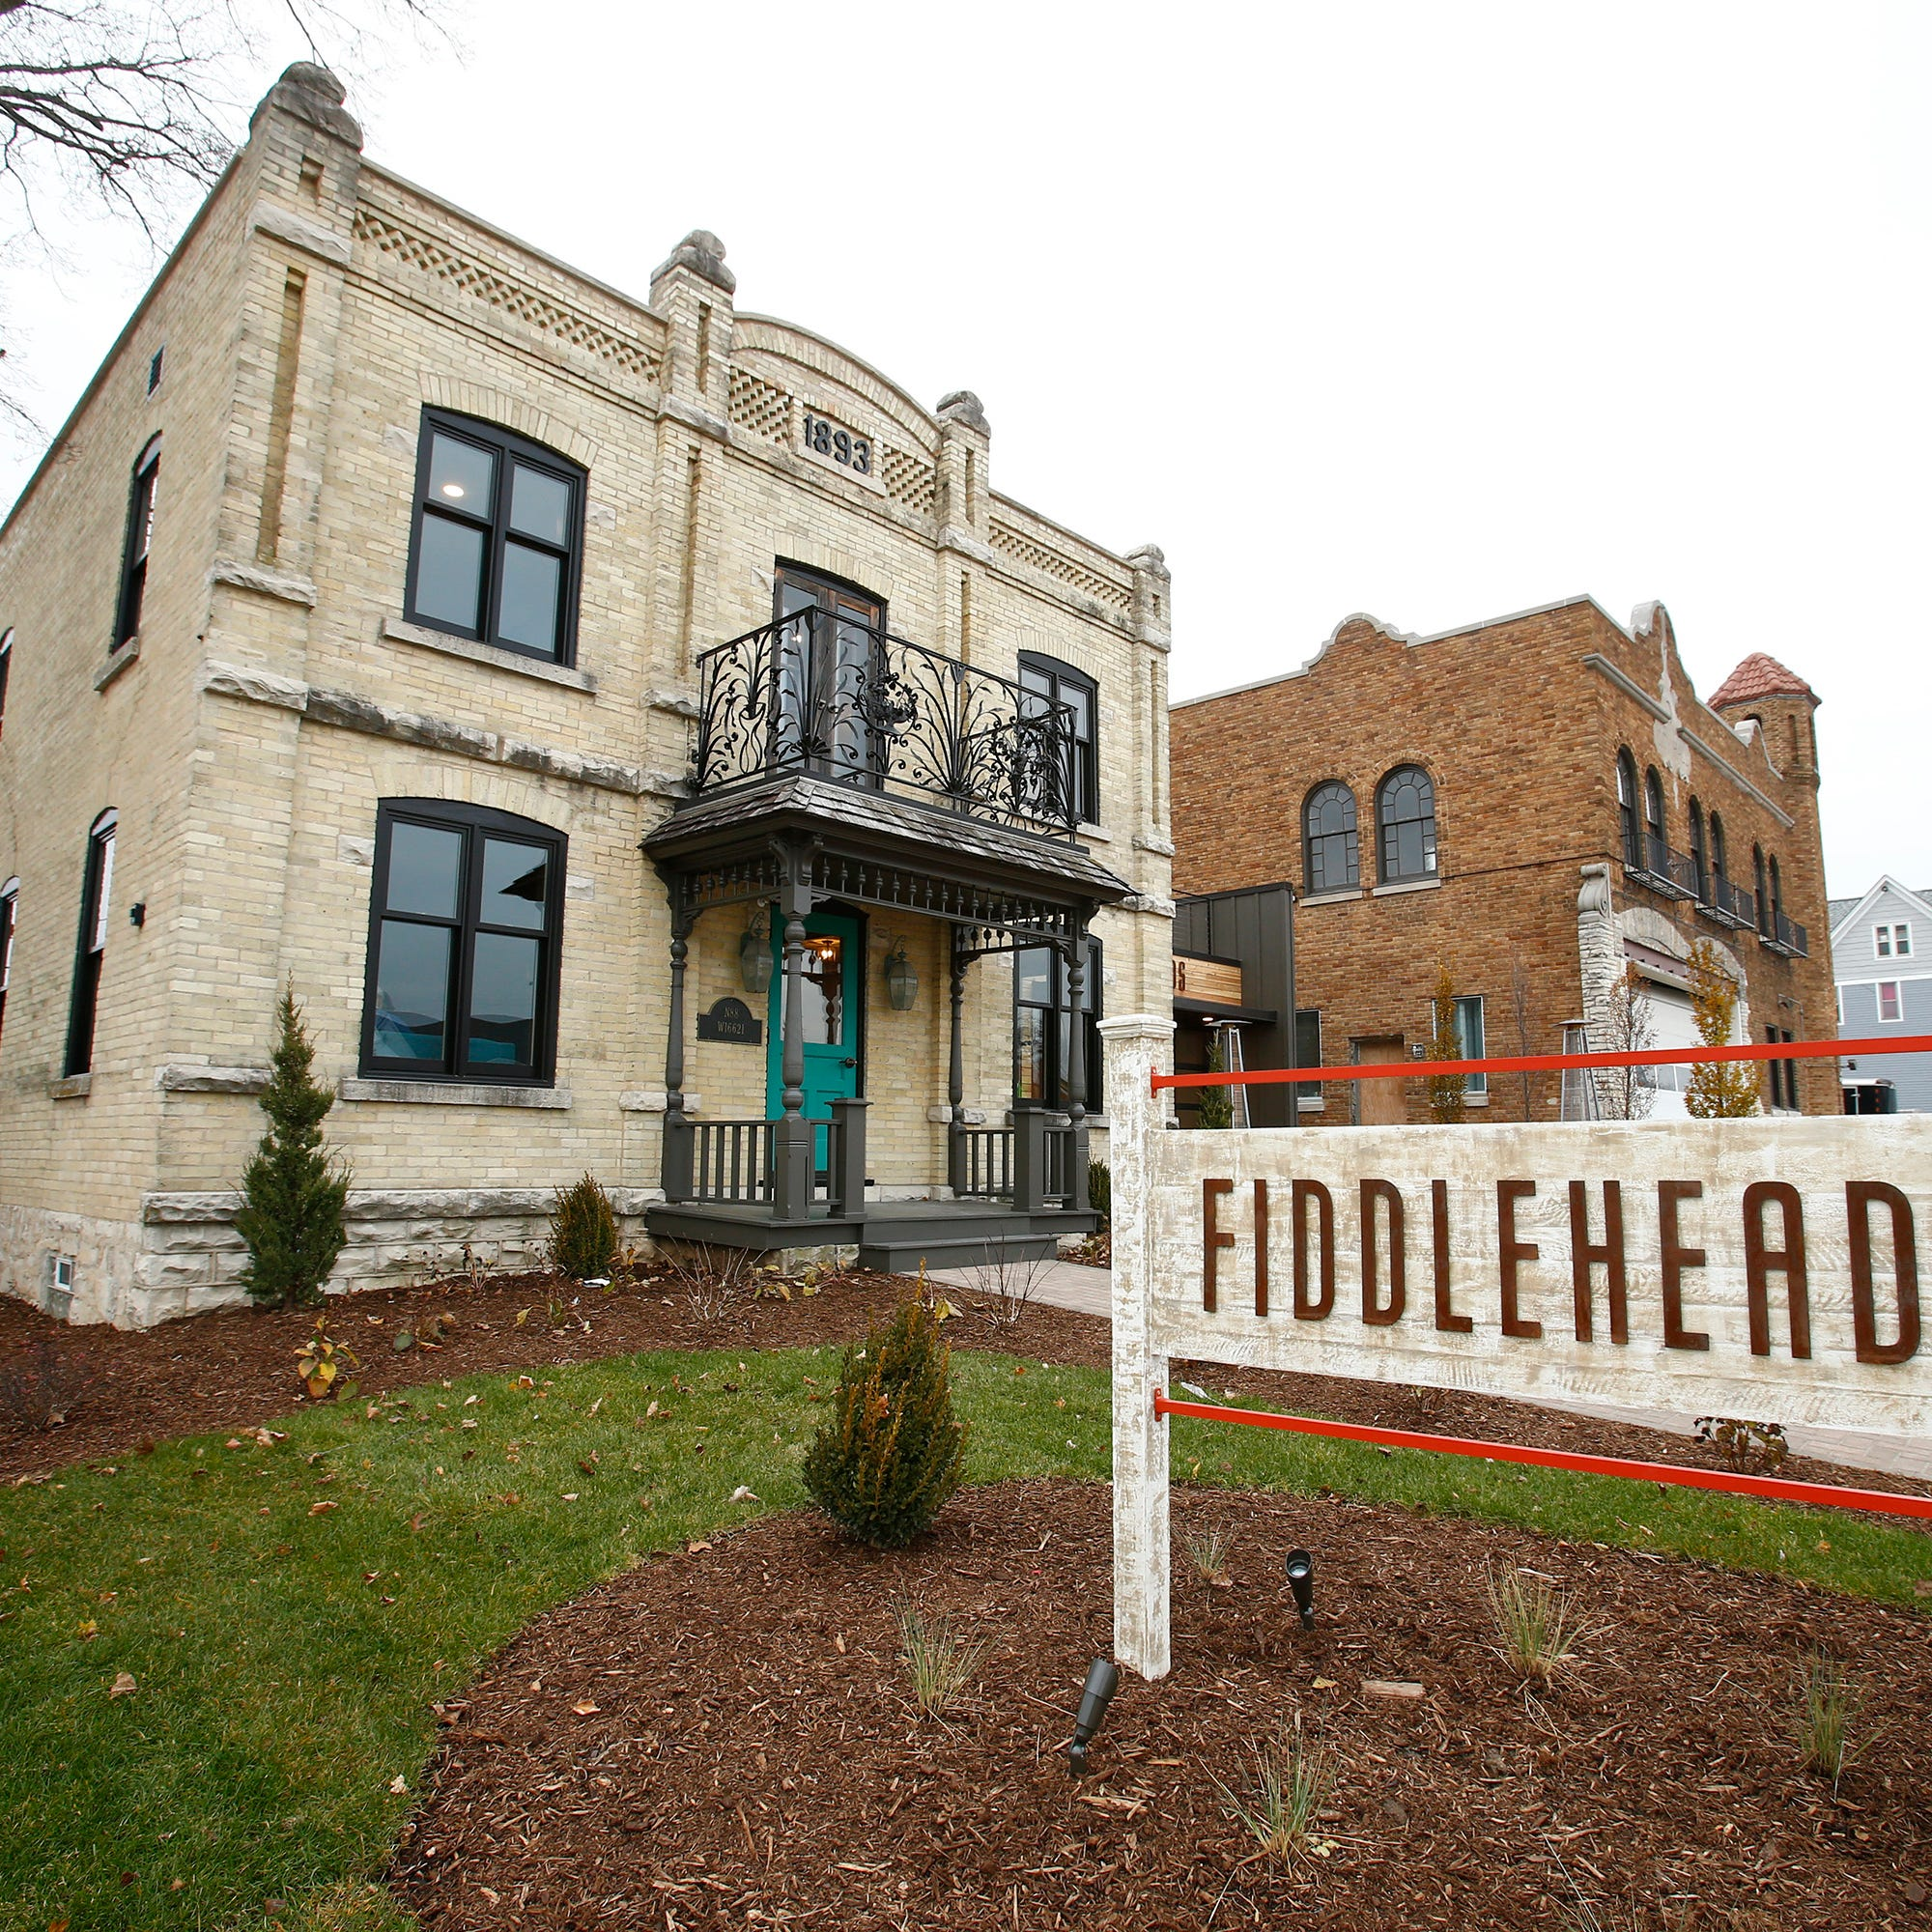 Fiddleheads coffee set to open in Menomonee Falls on Nov. 25